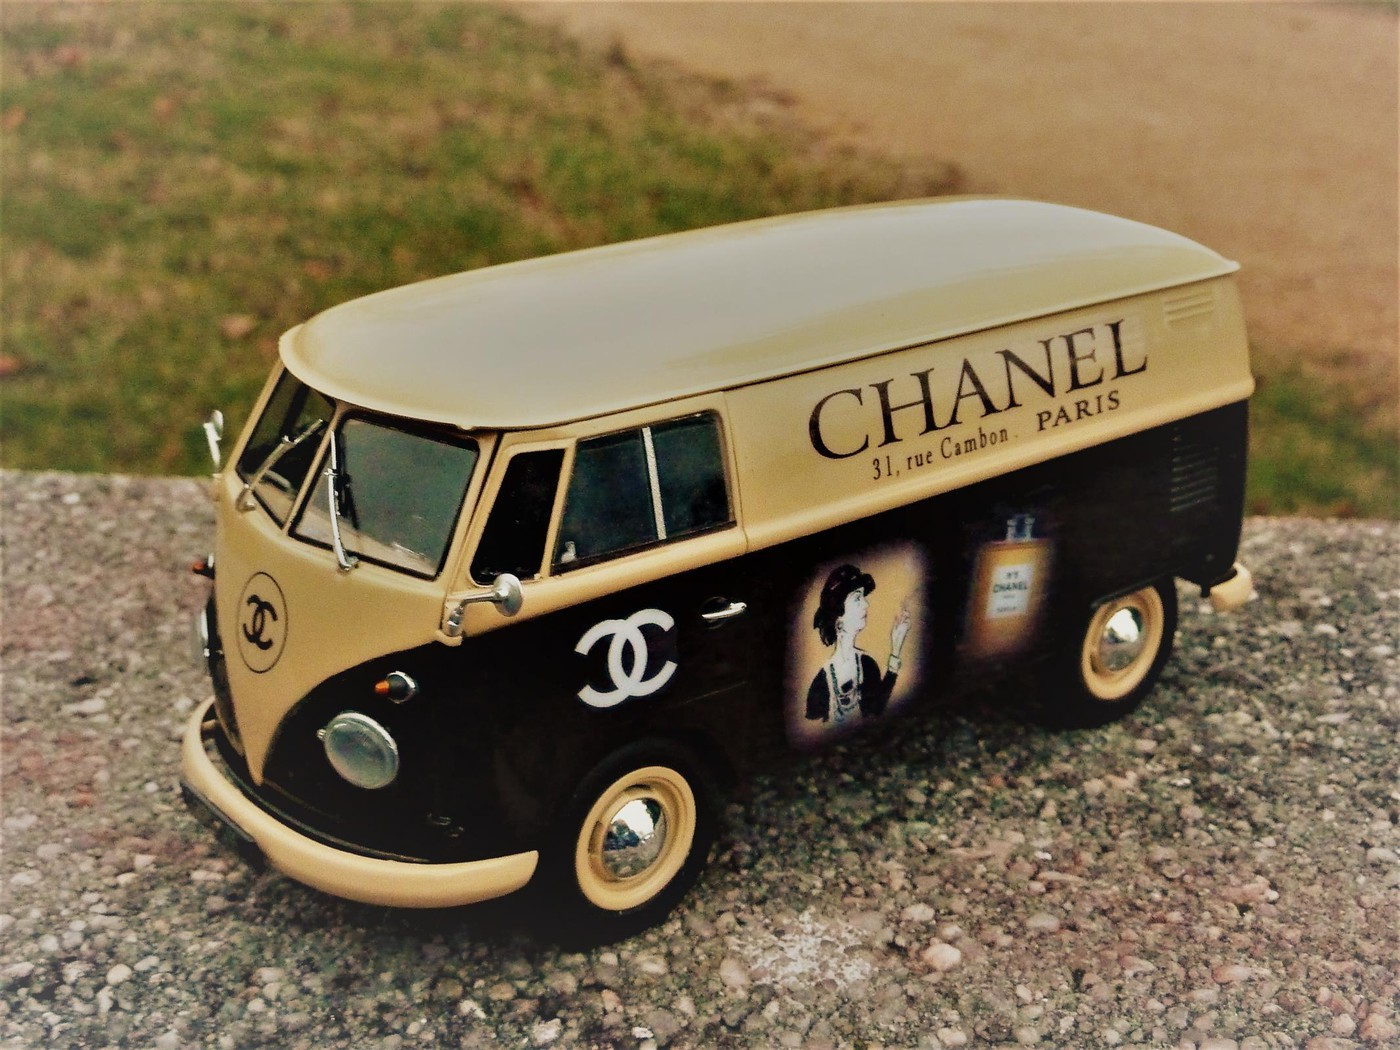 Combi  wv publicitaire Chanel terminé  Photo1-vi